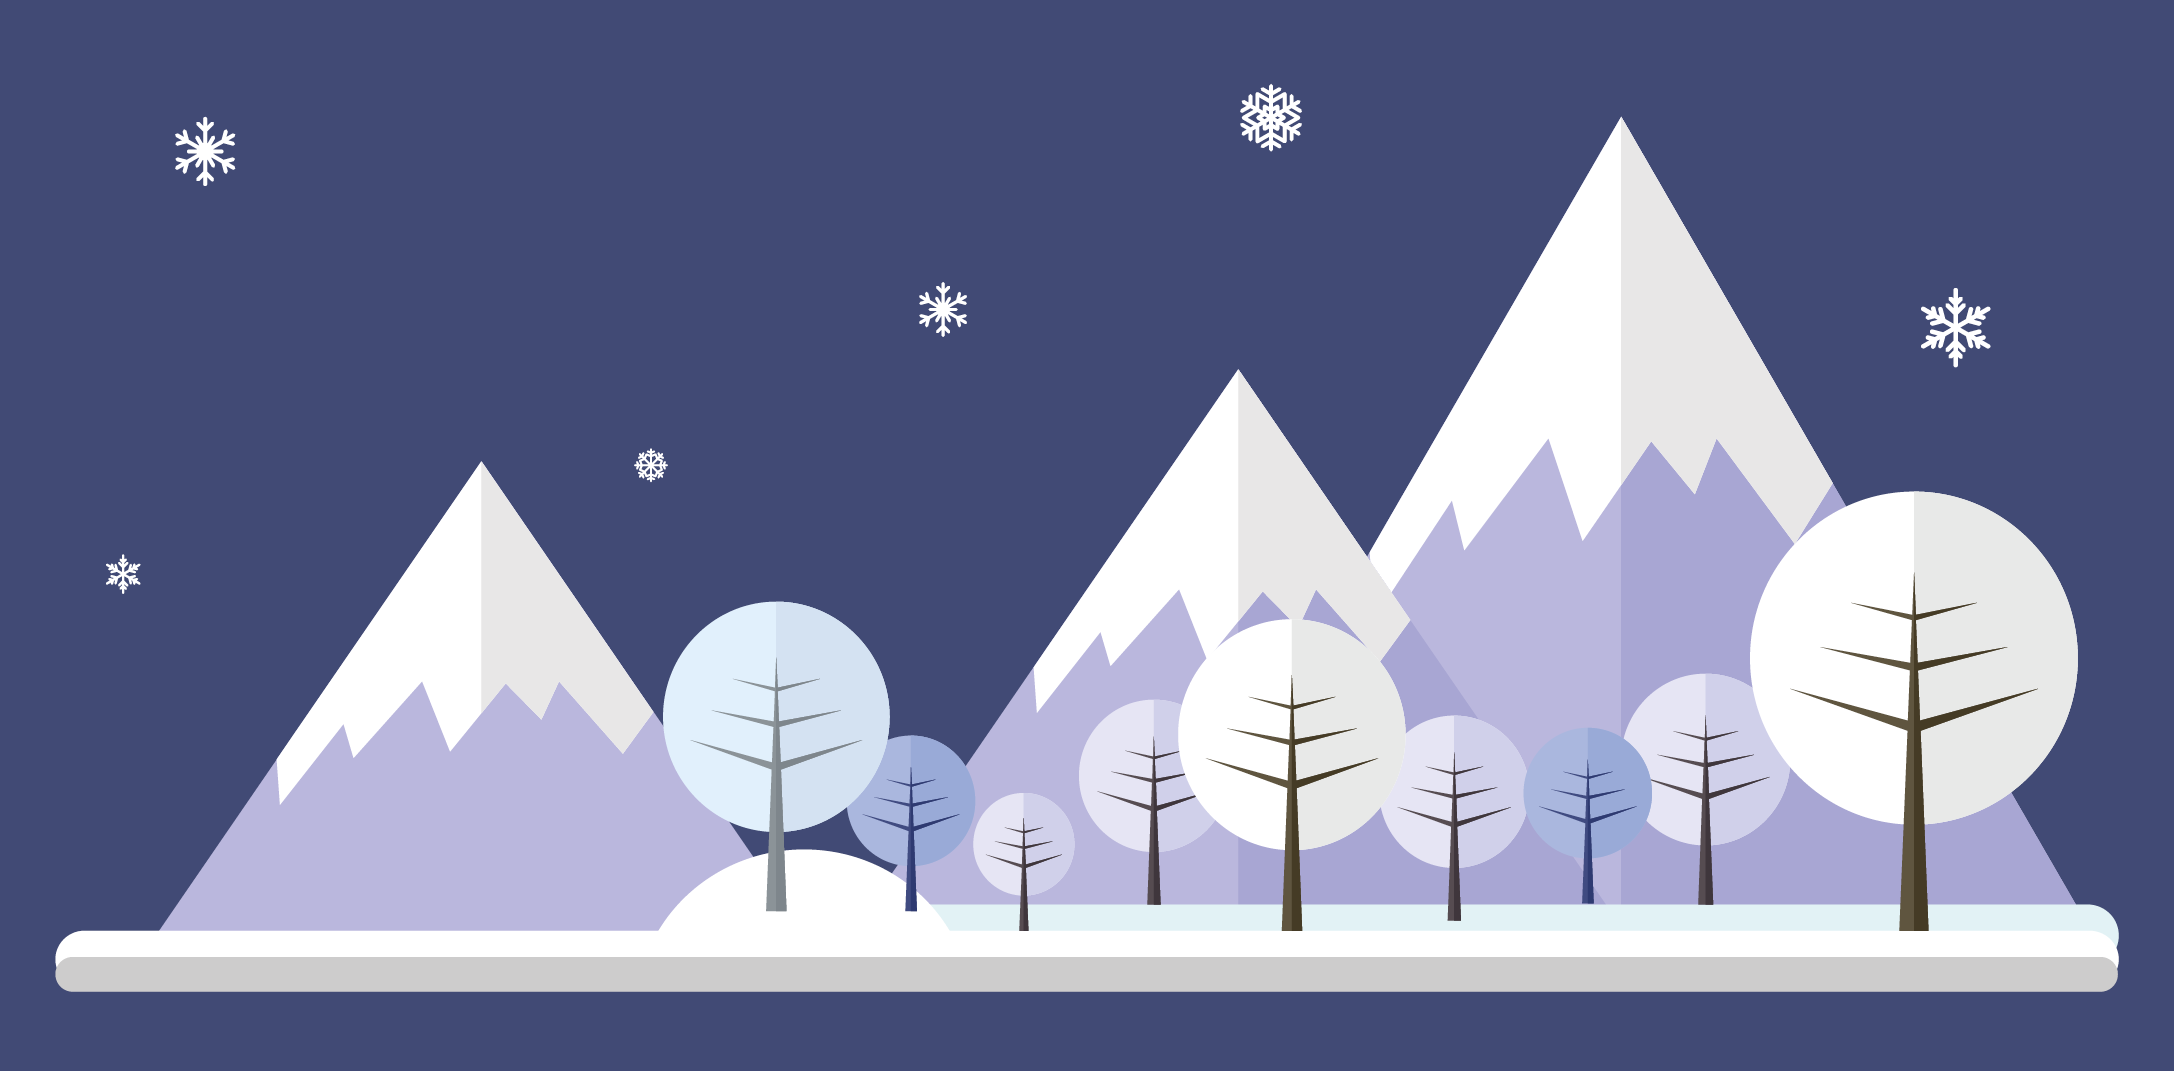 Graphics showing image of snow covered mountains and tress to represent winter months